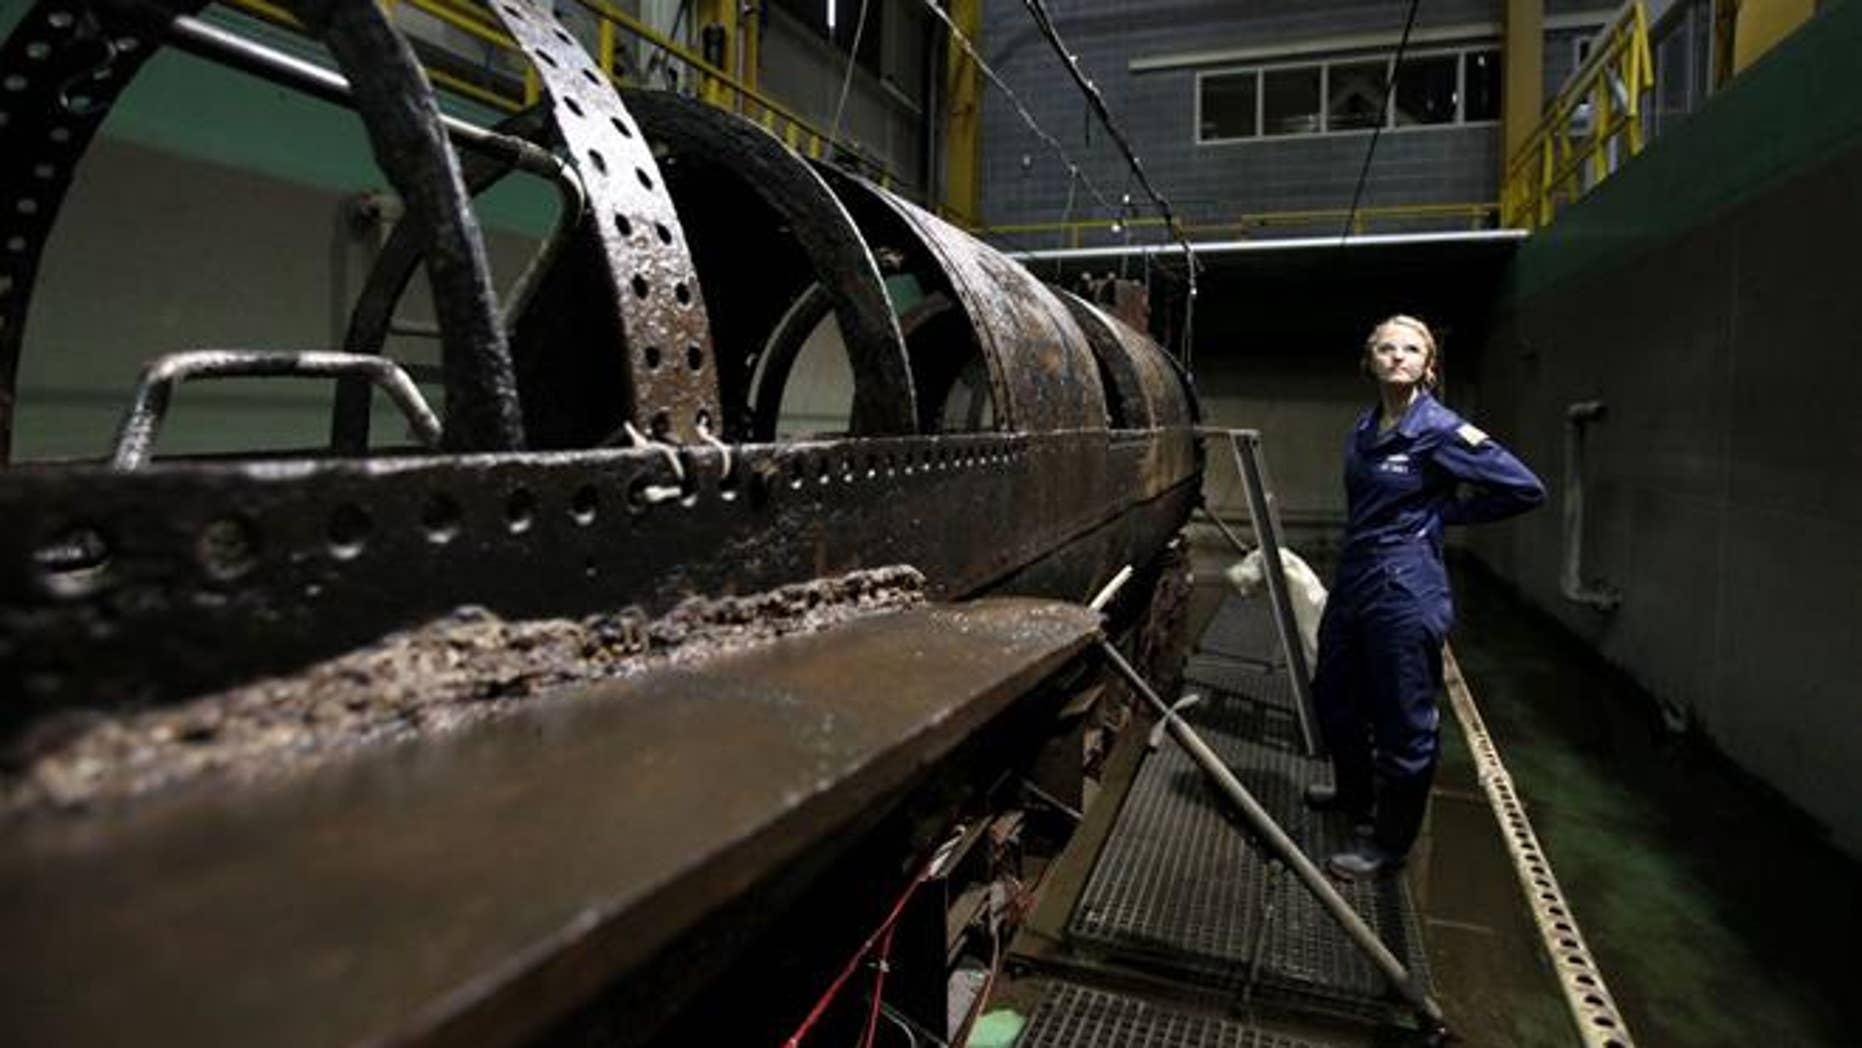 Conservator Anna Funke stands next to the HL Hunley at the Warren Lasch Conservation Center on Wednesday. (Michael Pronzato/The Post And Courier via AP)